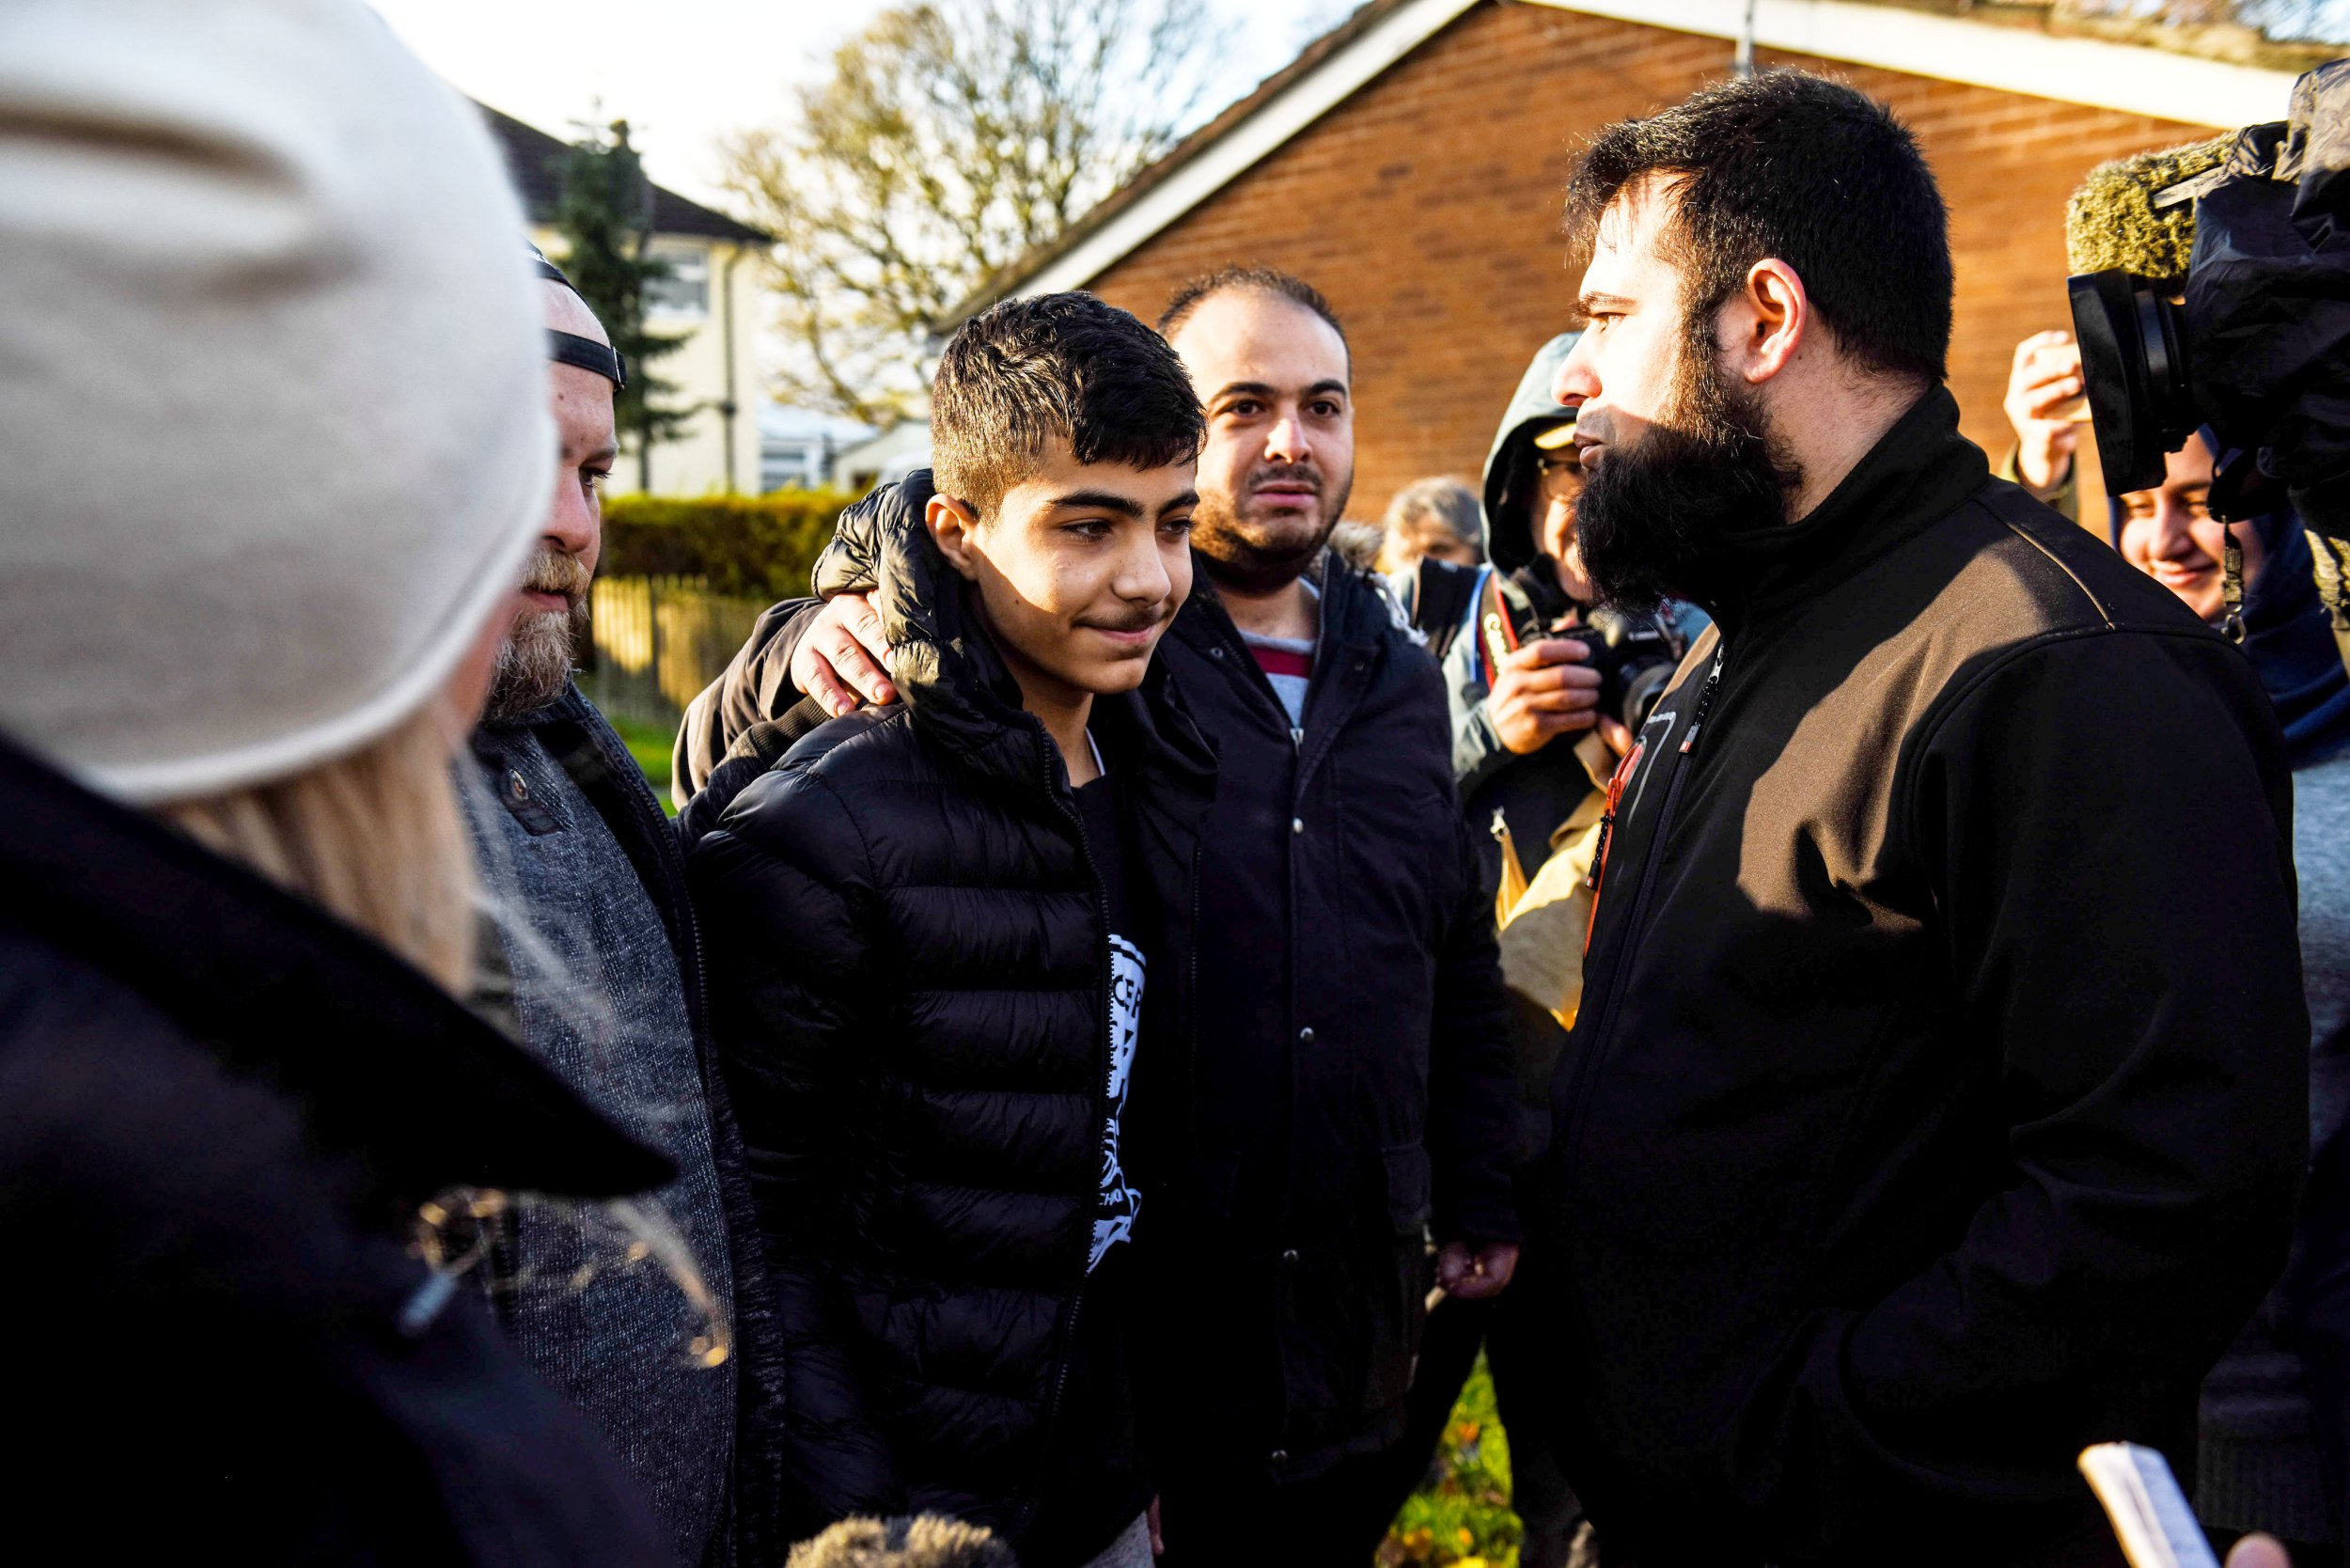 Mum of bully who 'waterboarded' Syrian boy called chip shop owner a 'P**i' and 'terrorist'